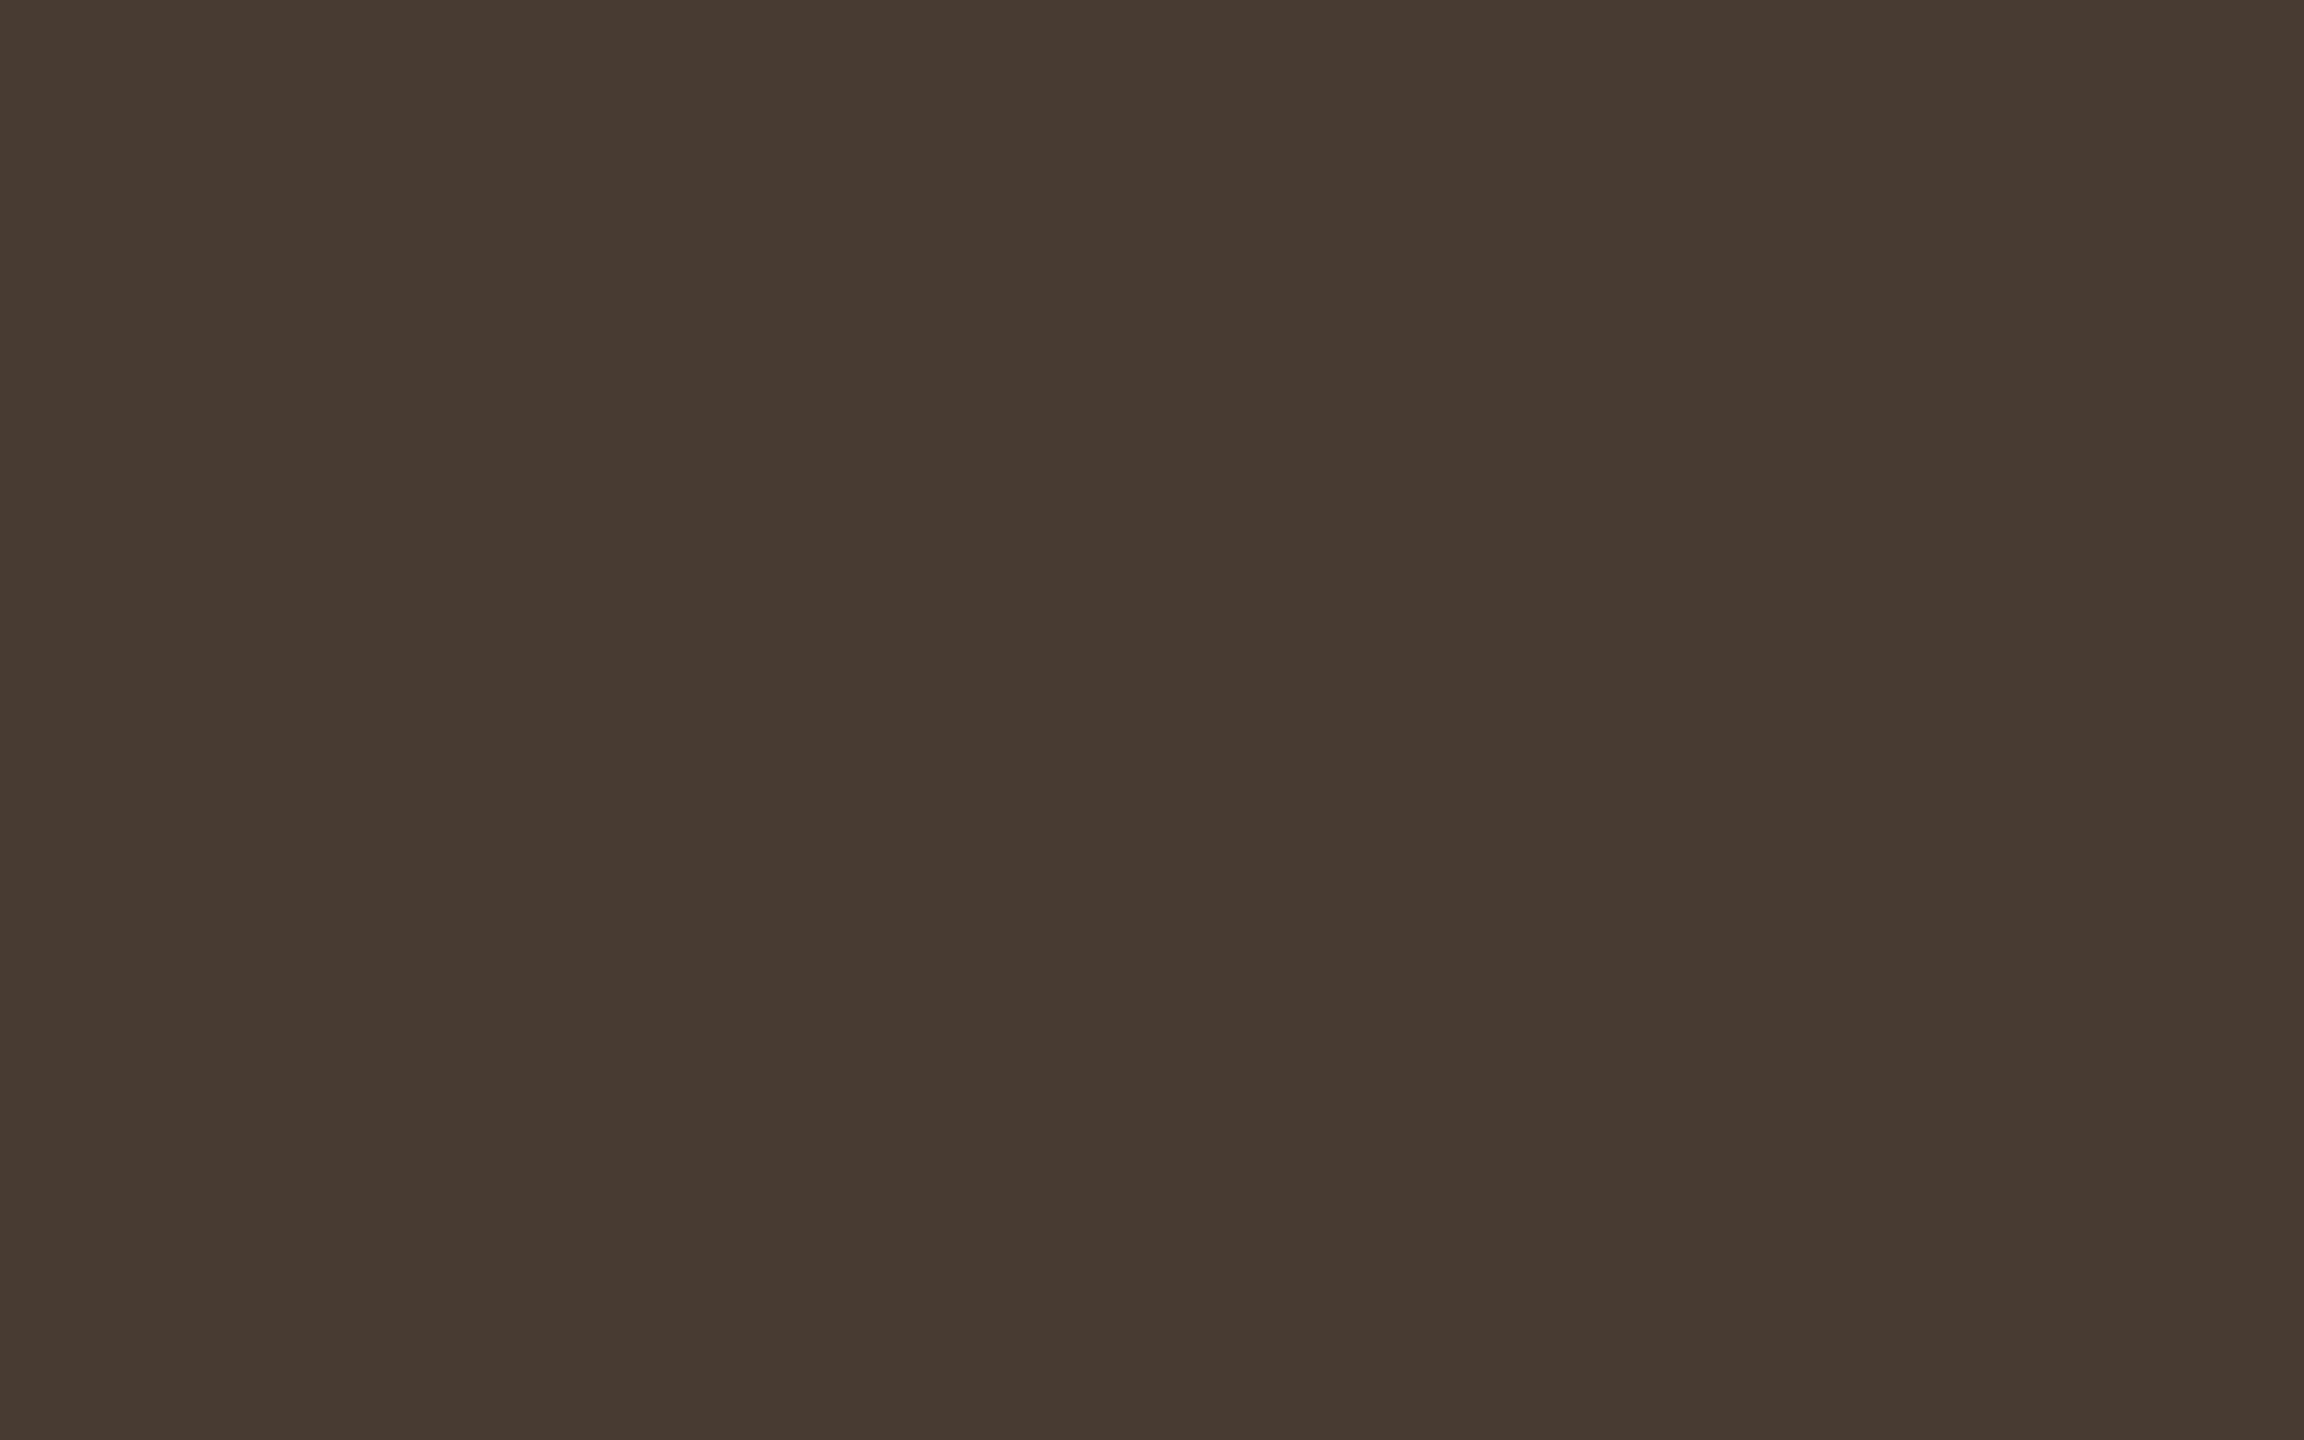 2304x1440 Taupe Solid Color Background